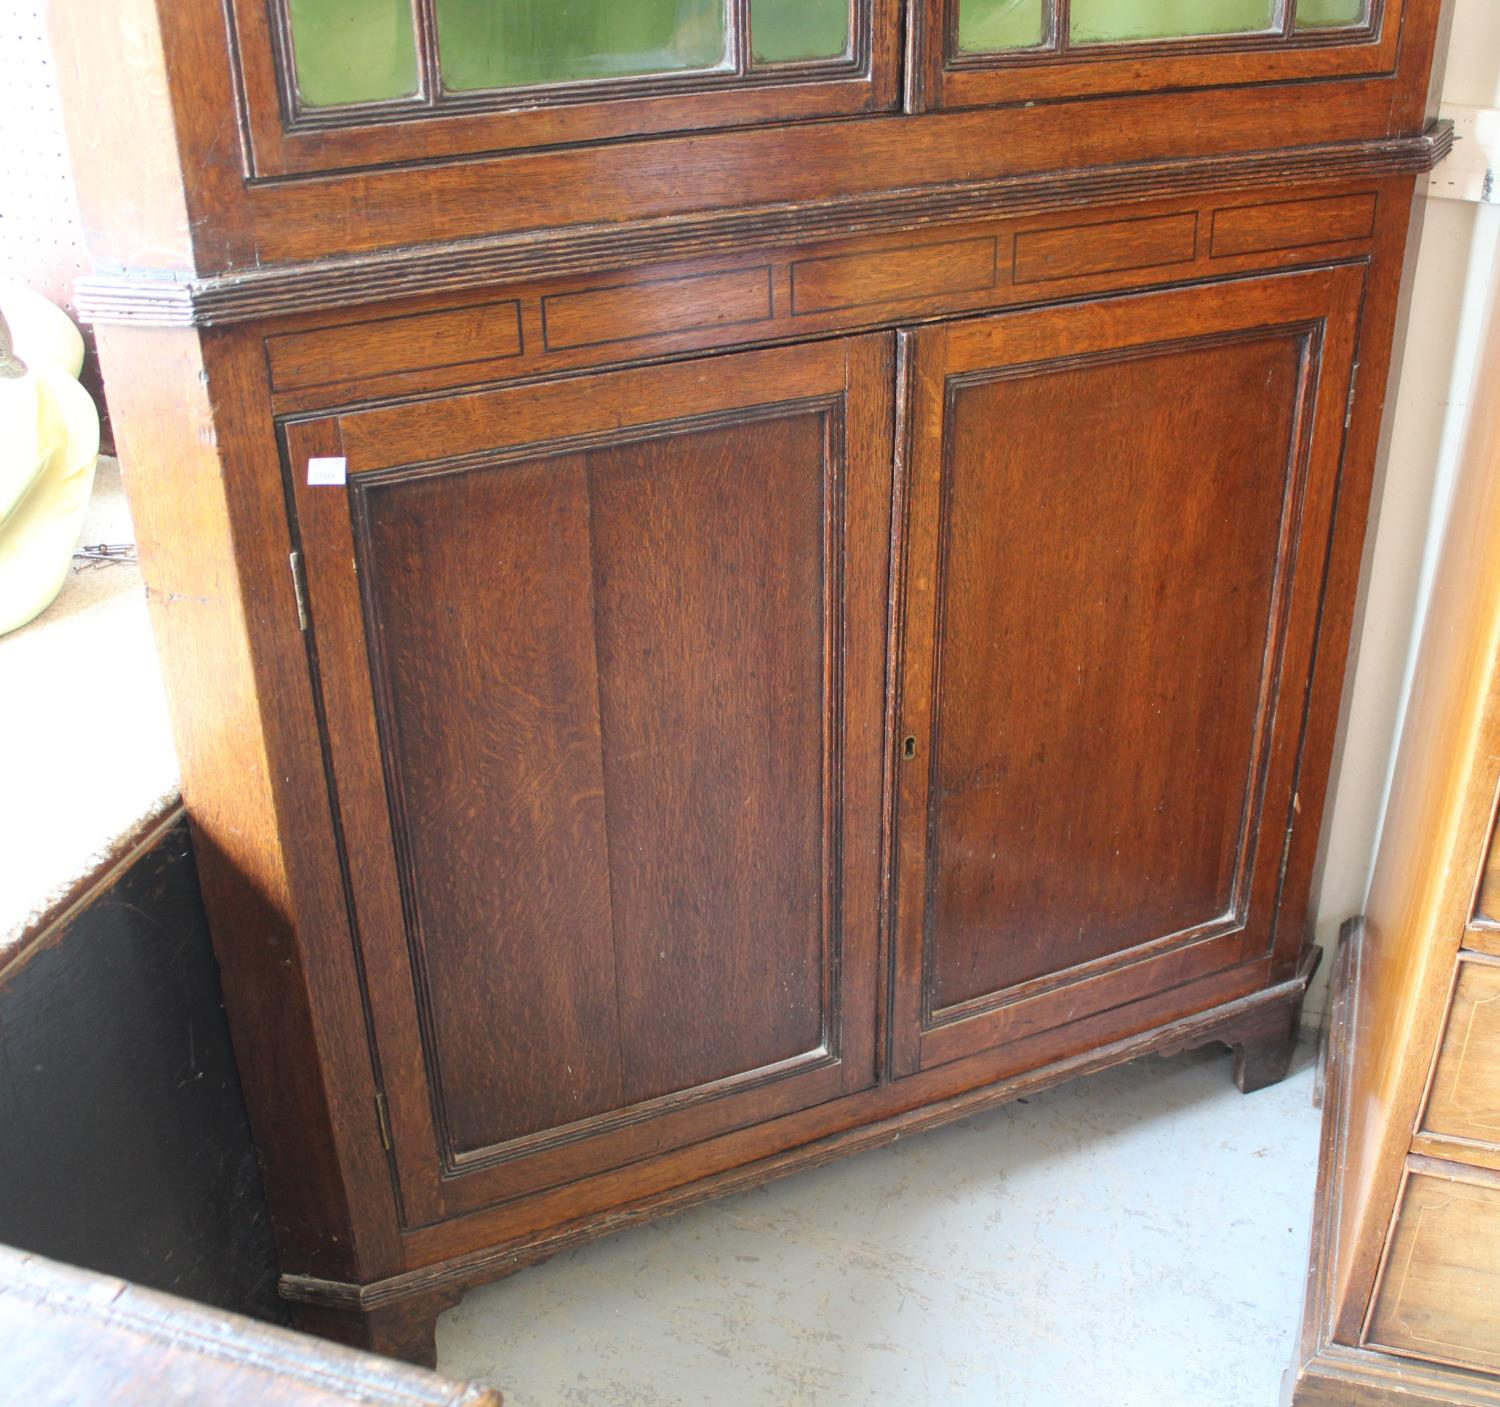 George III oak standing corner cabinet with a moulded cornice above a pair of astragal glazed doors, - Image 3 of 5